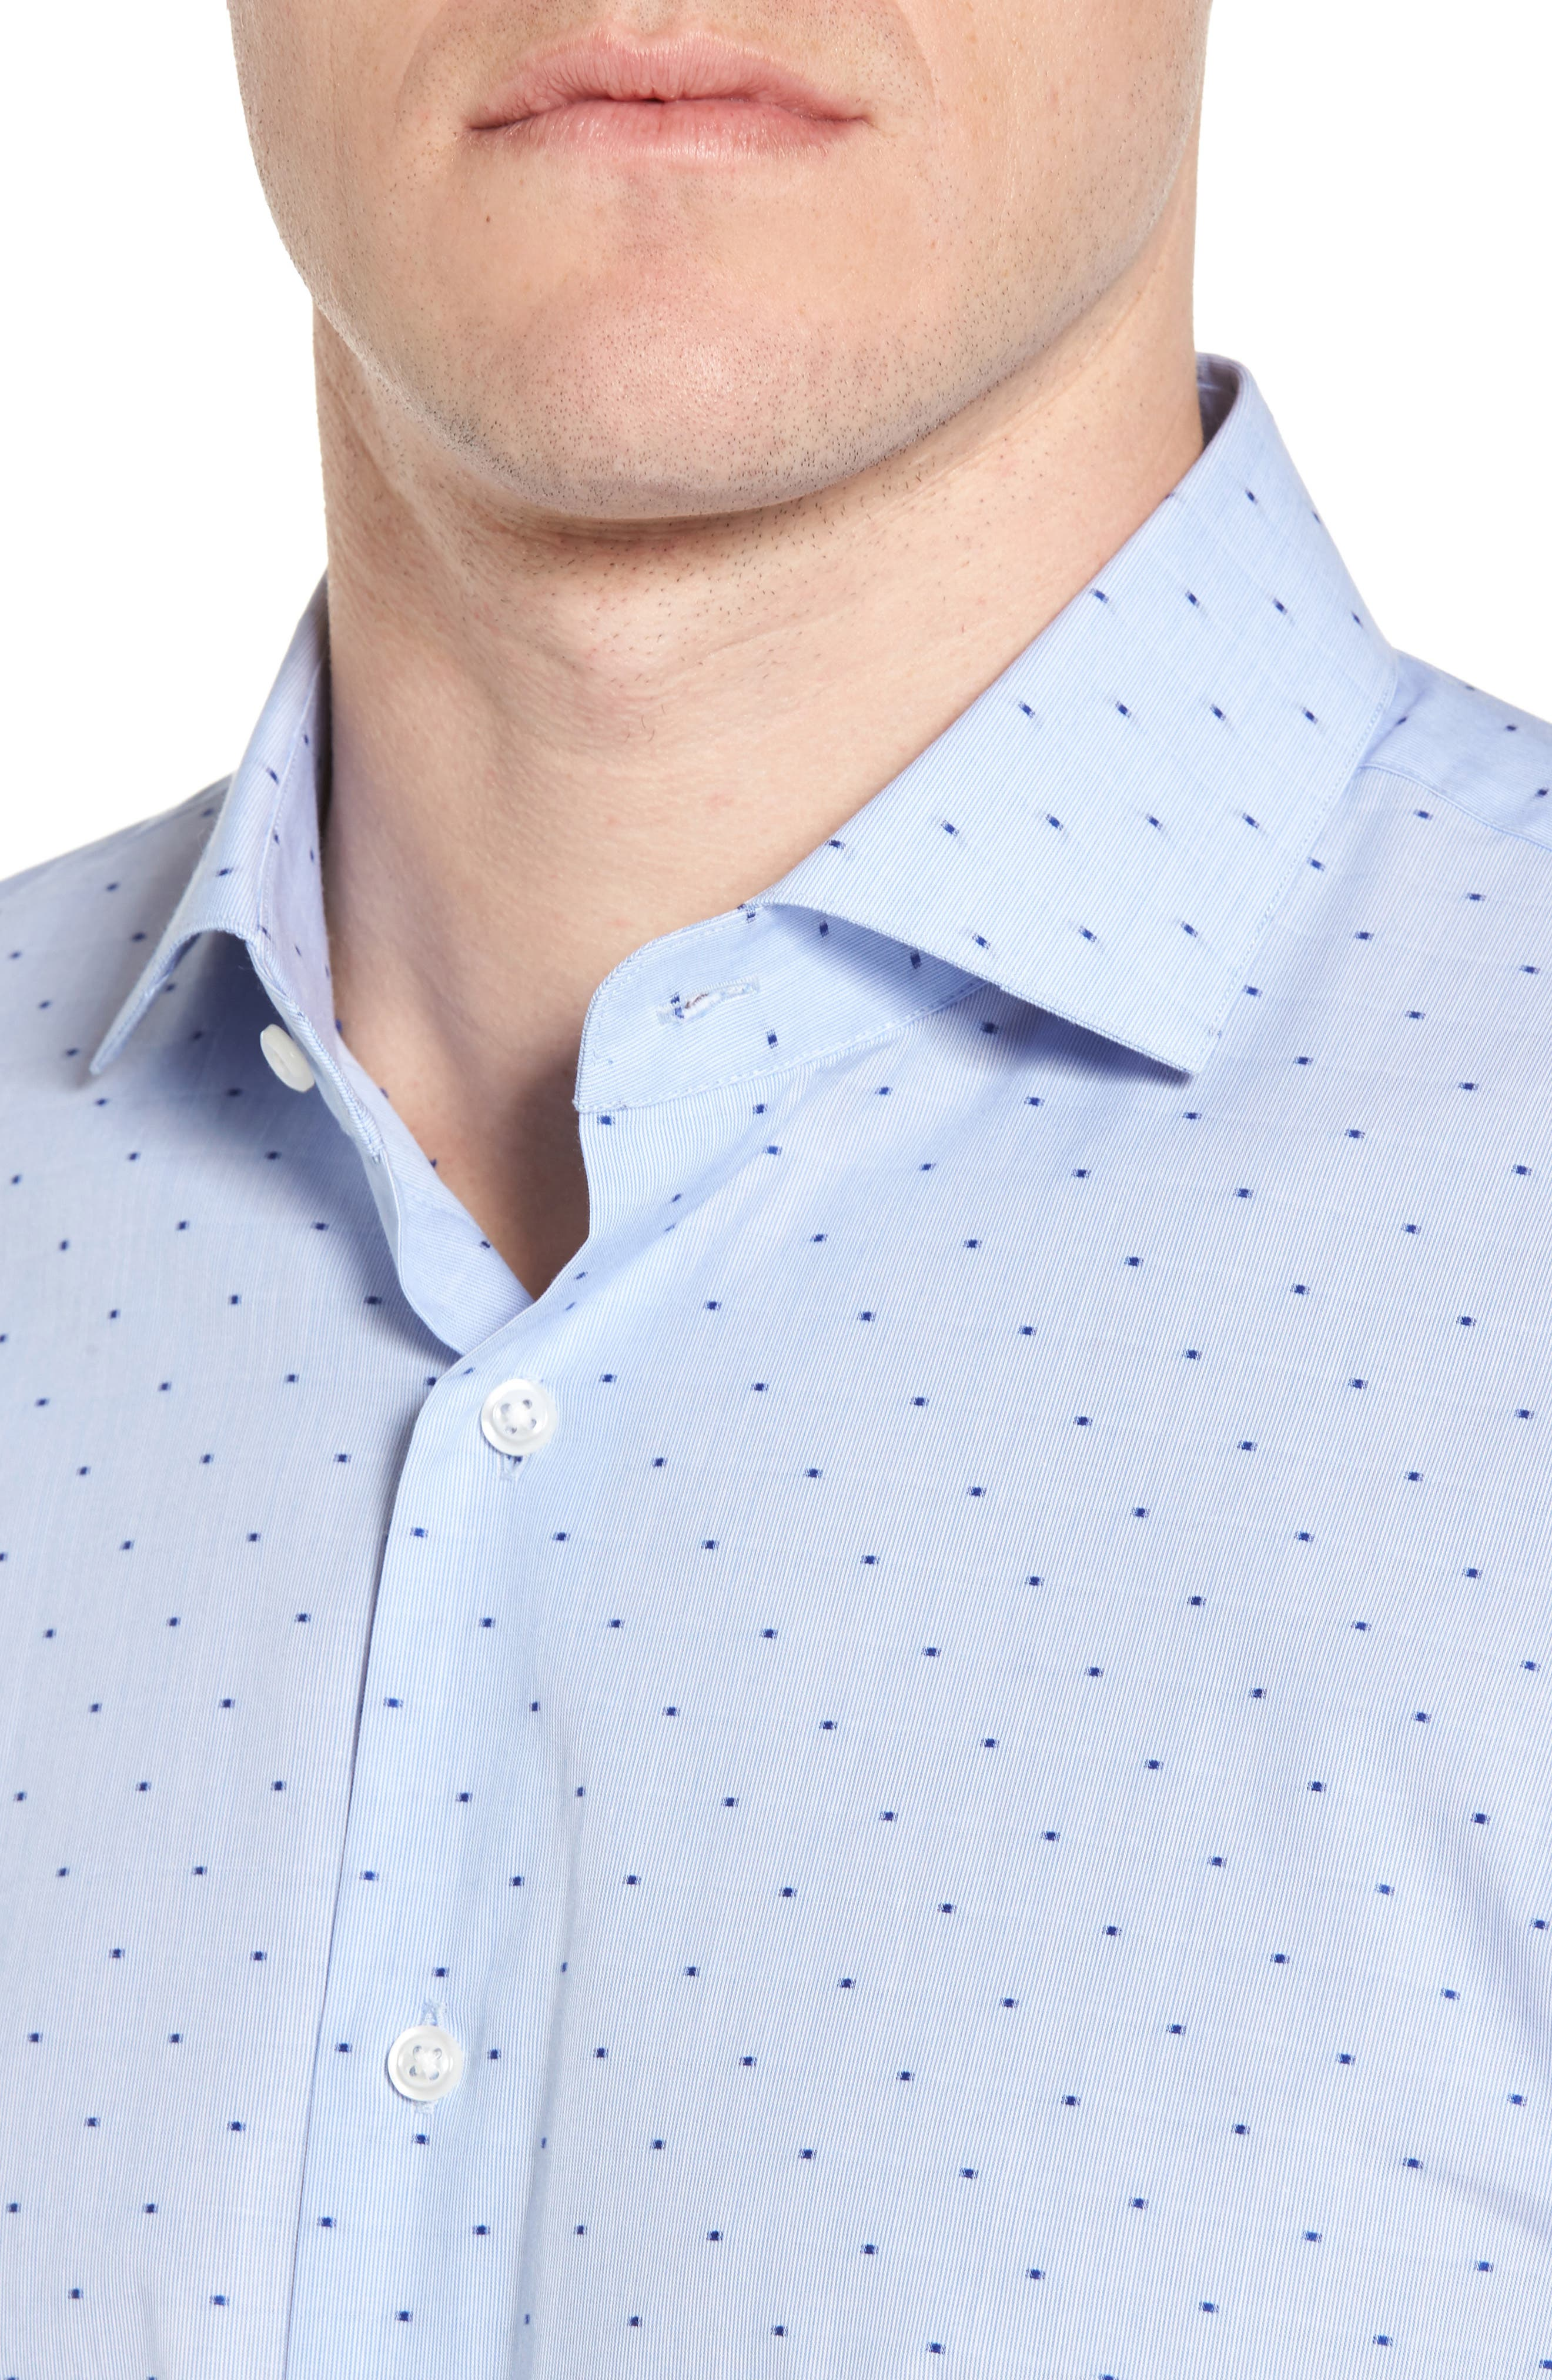 Trim Fit Dot Dress Shirt,                             Alternate thumbnail 4, color,                             450